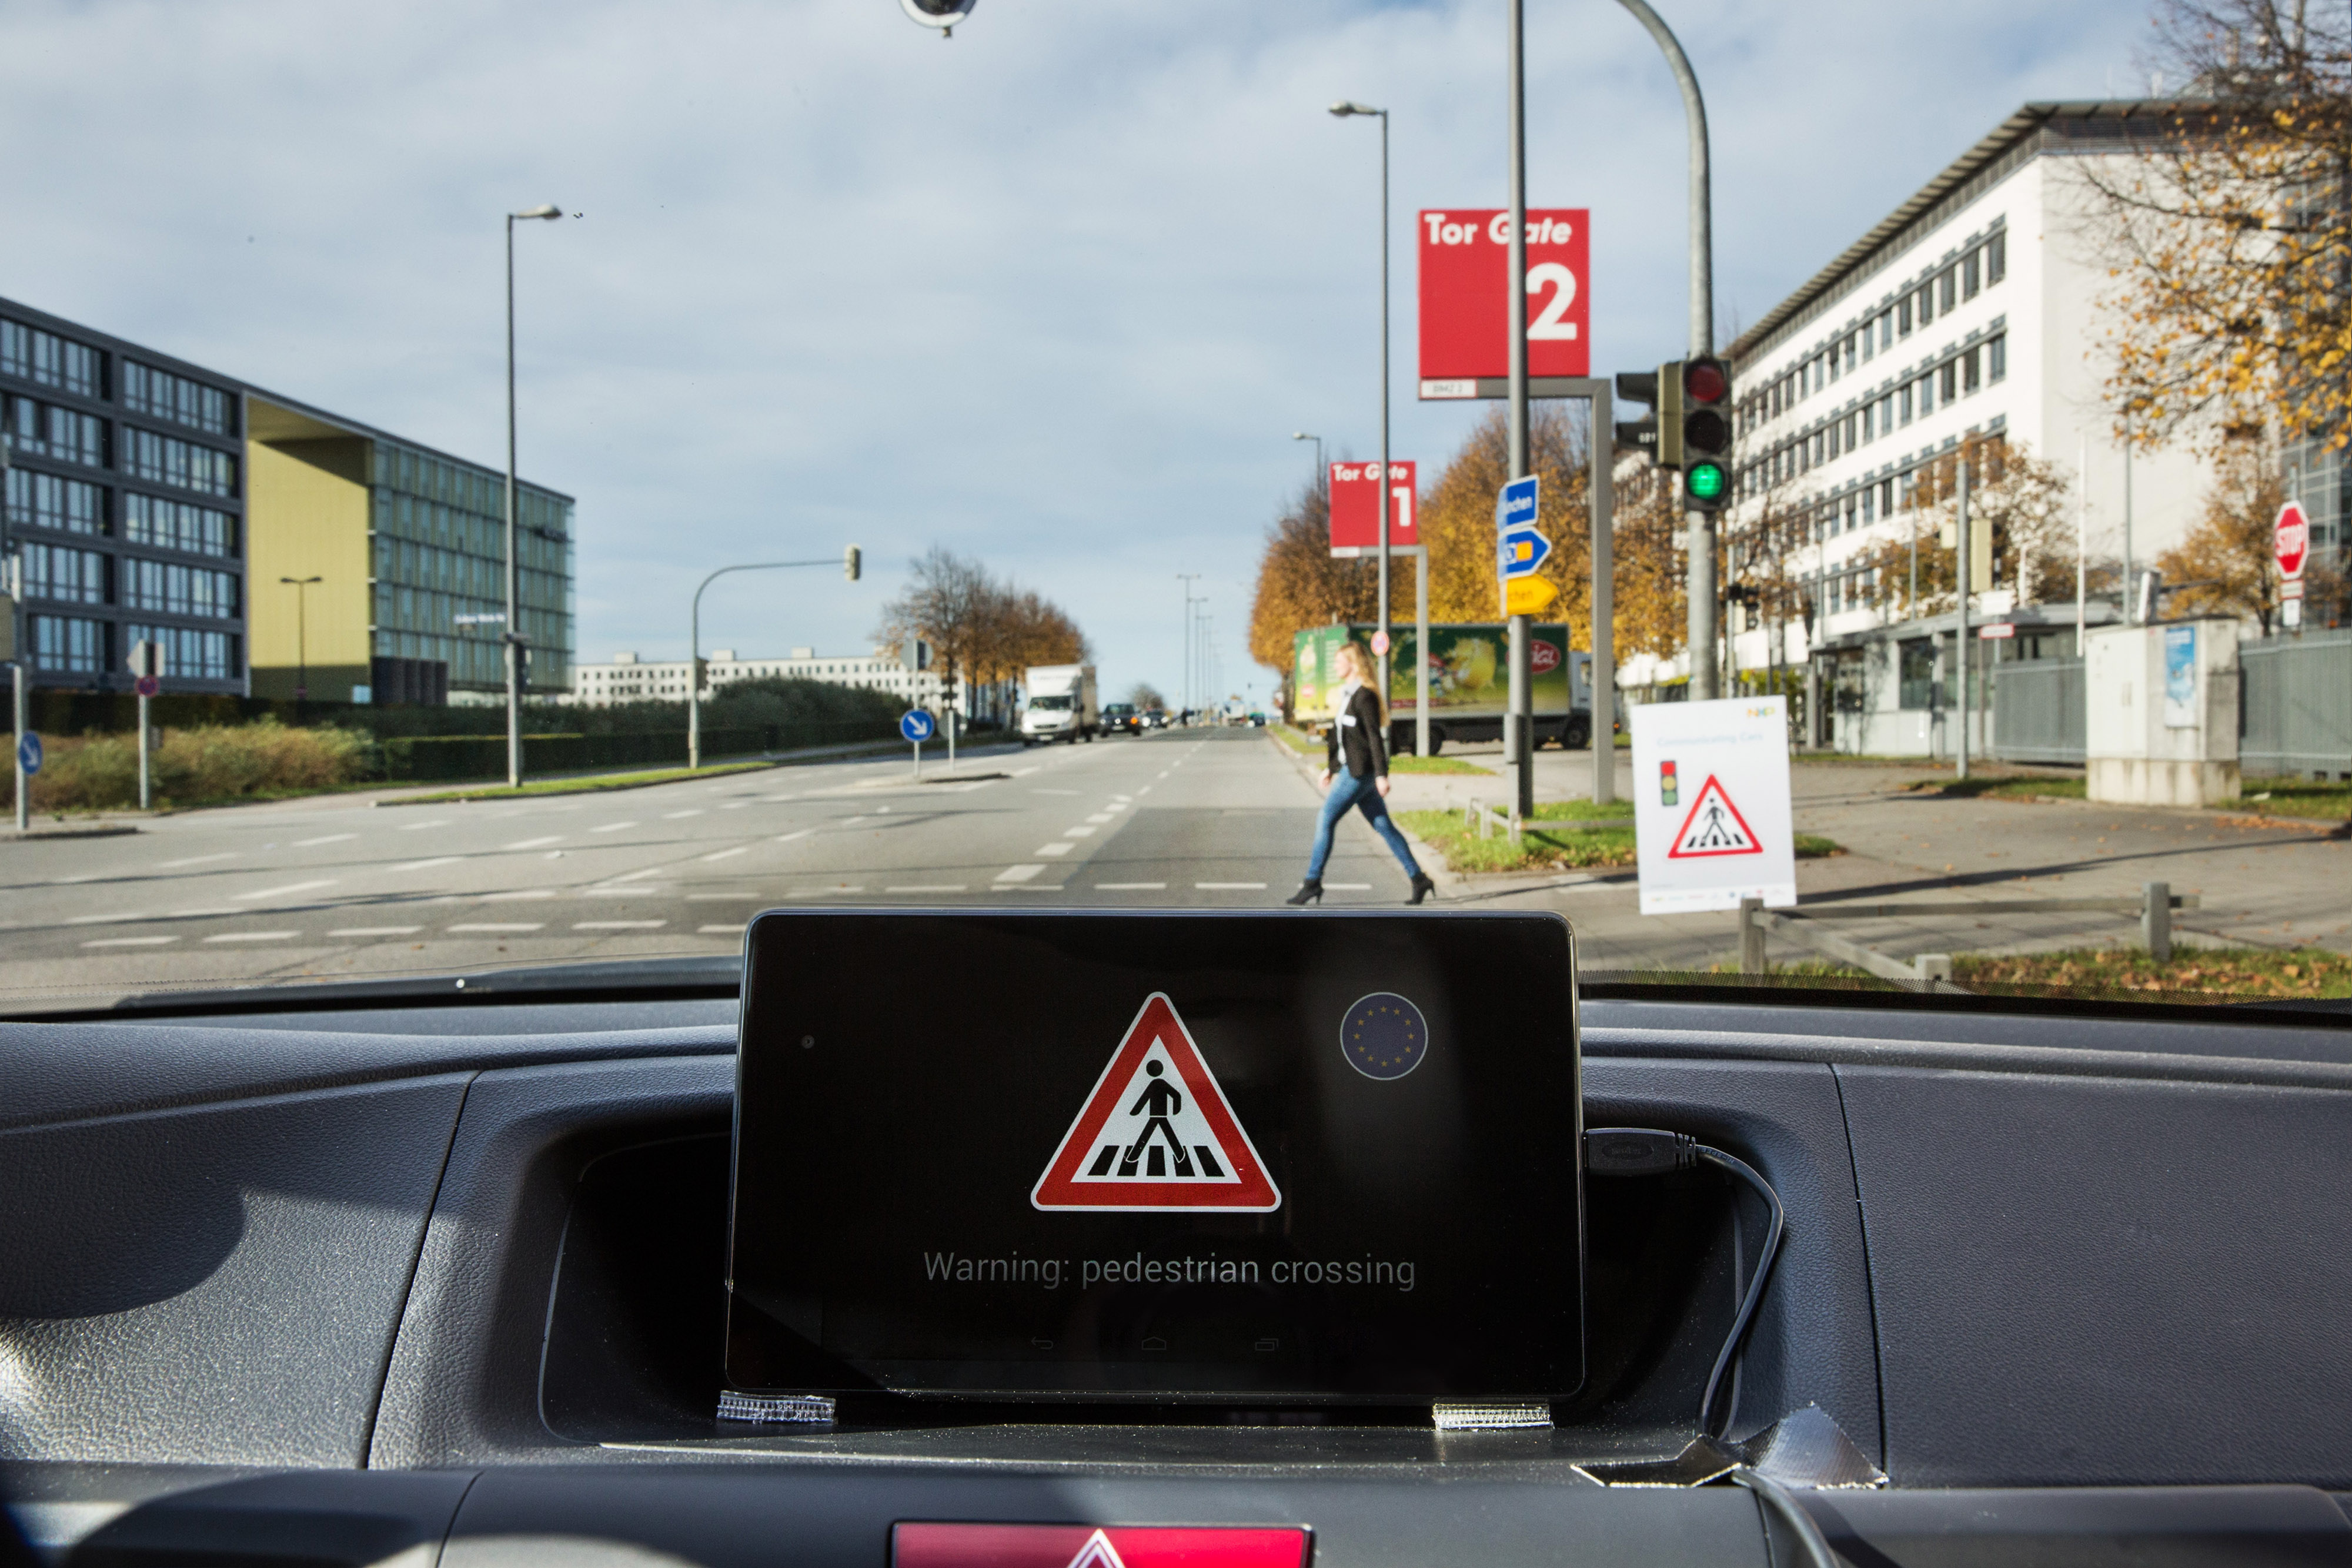 NXP Car To X Technology Test Drive Pedestrian Crossing